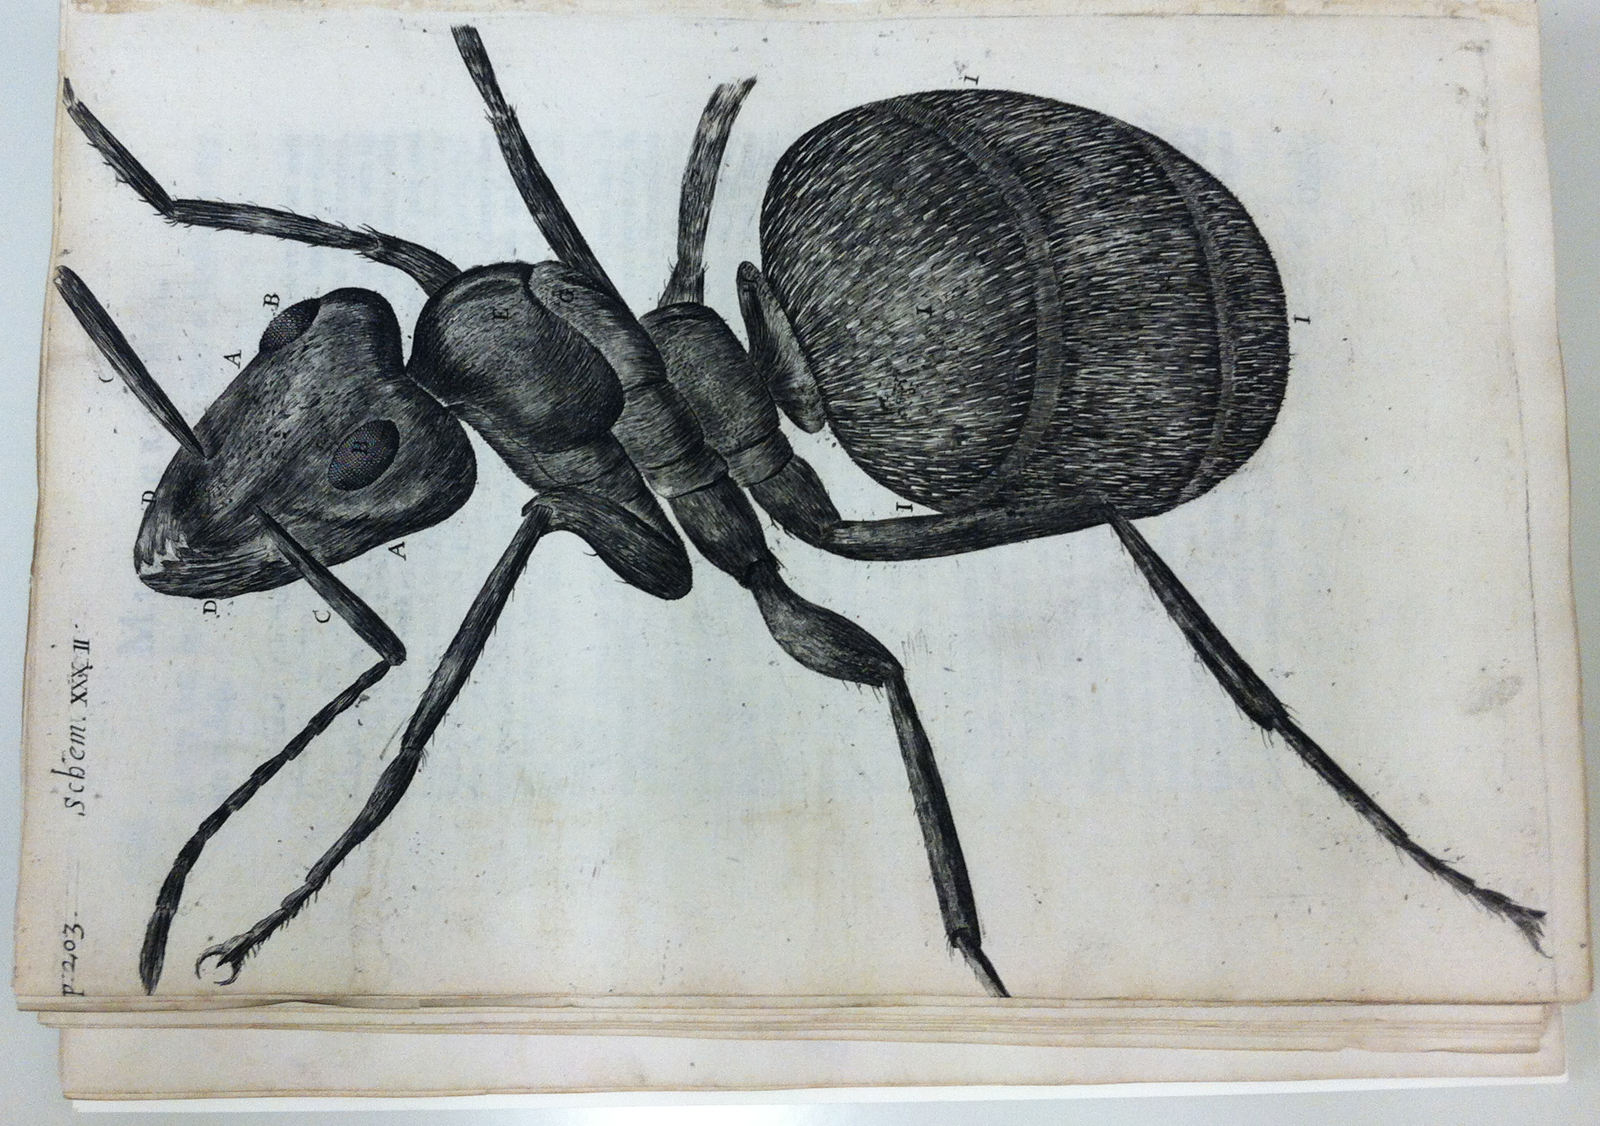 Illustration of an ant from Hooke's Micrographia.